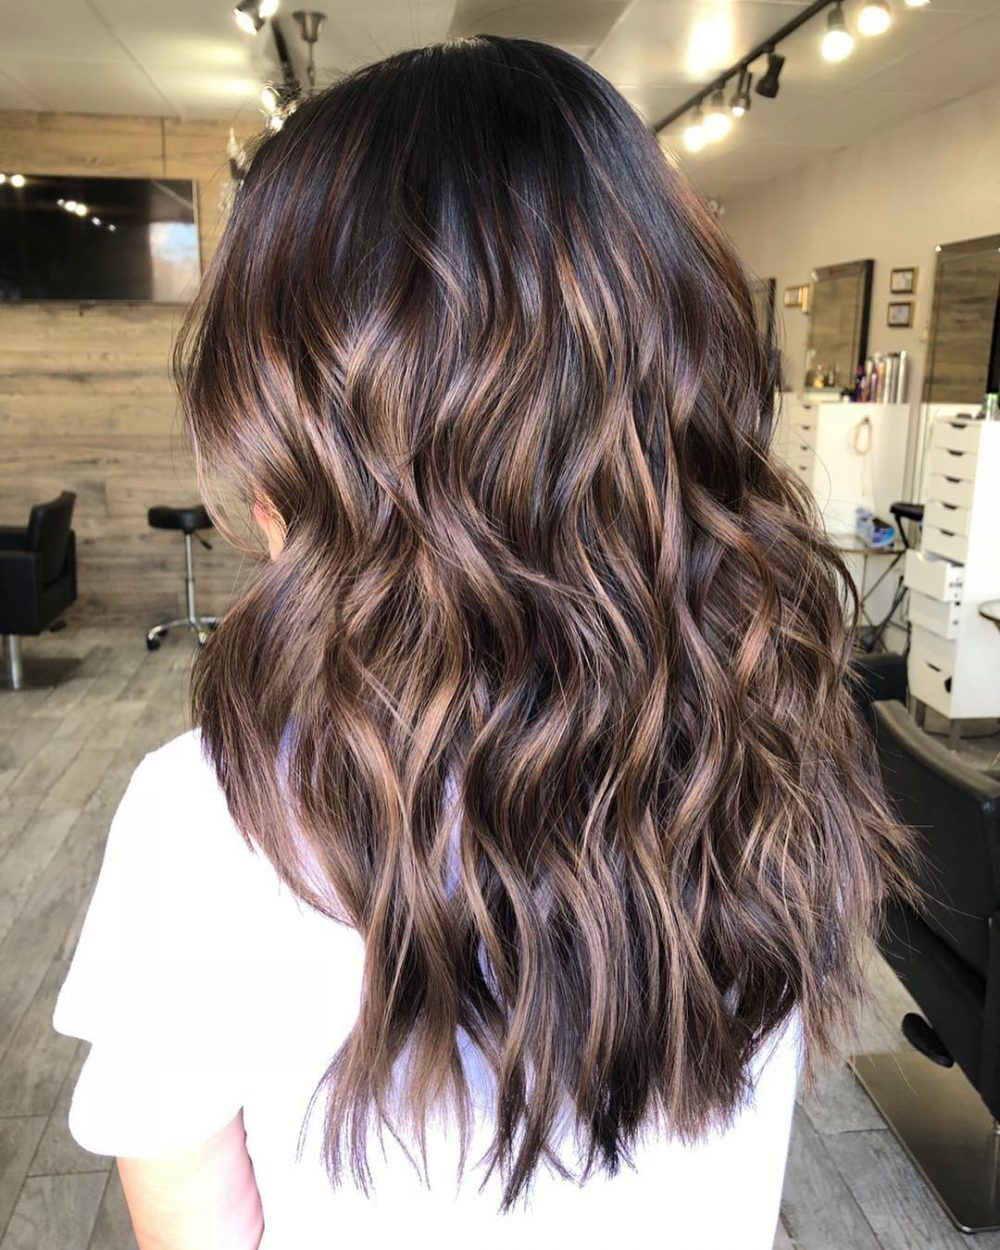 29 Lowlights You Have To See Before Your Next Color Brown Blonde Hair Blonde Hair Color Brown Hair With Highlights